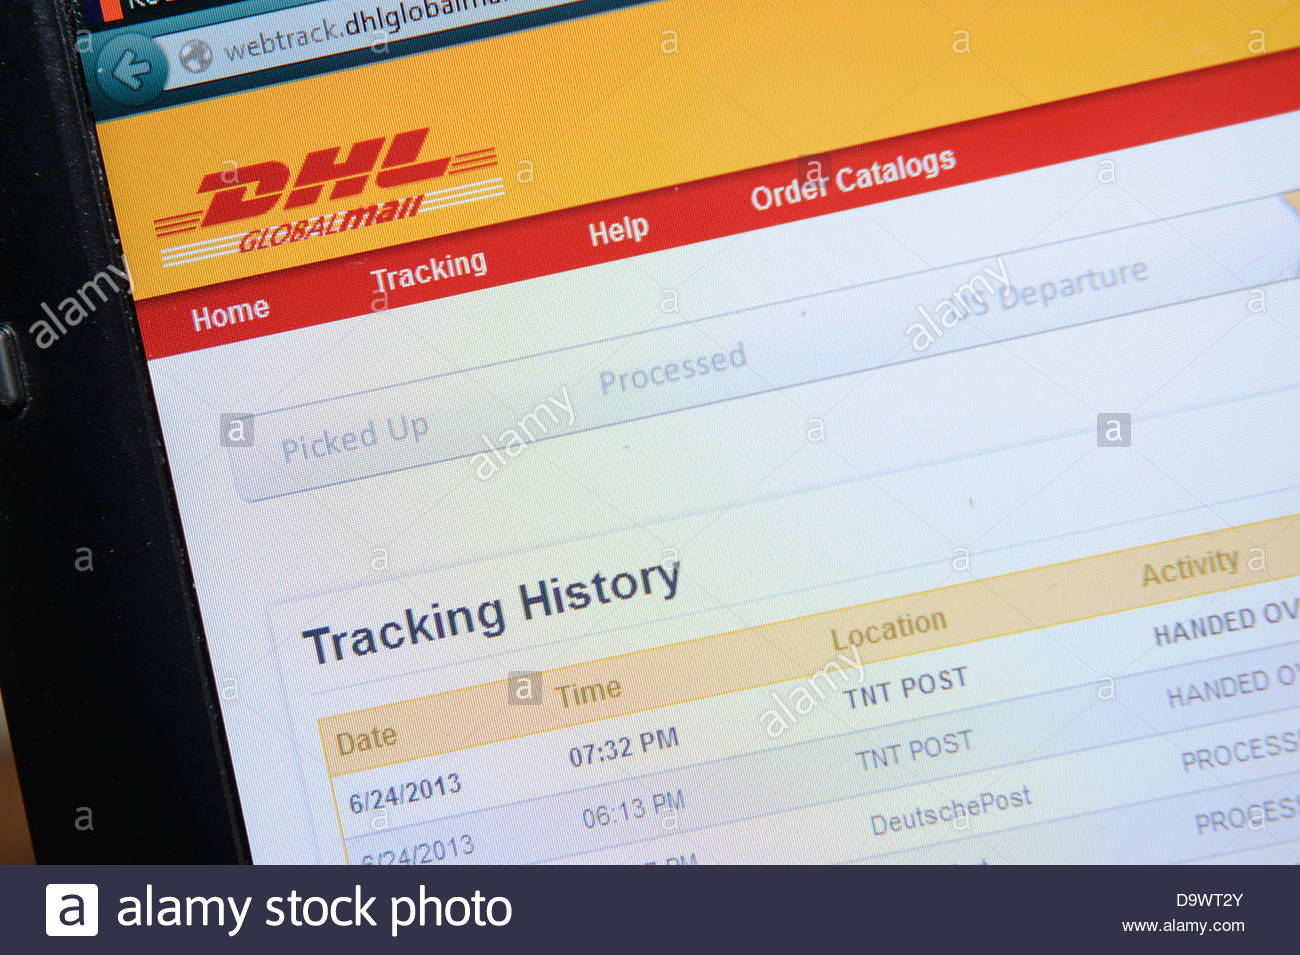 DHL on line parcel tracking - Stock Image